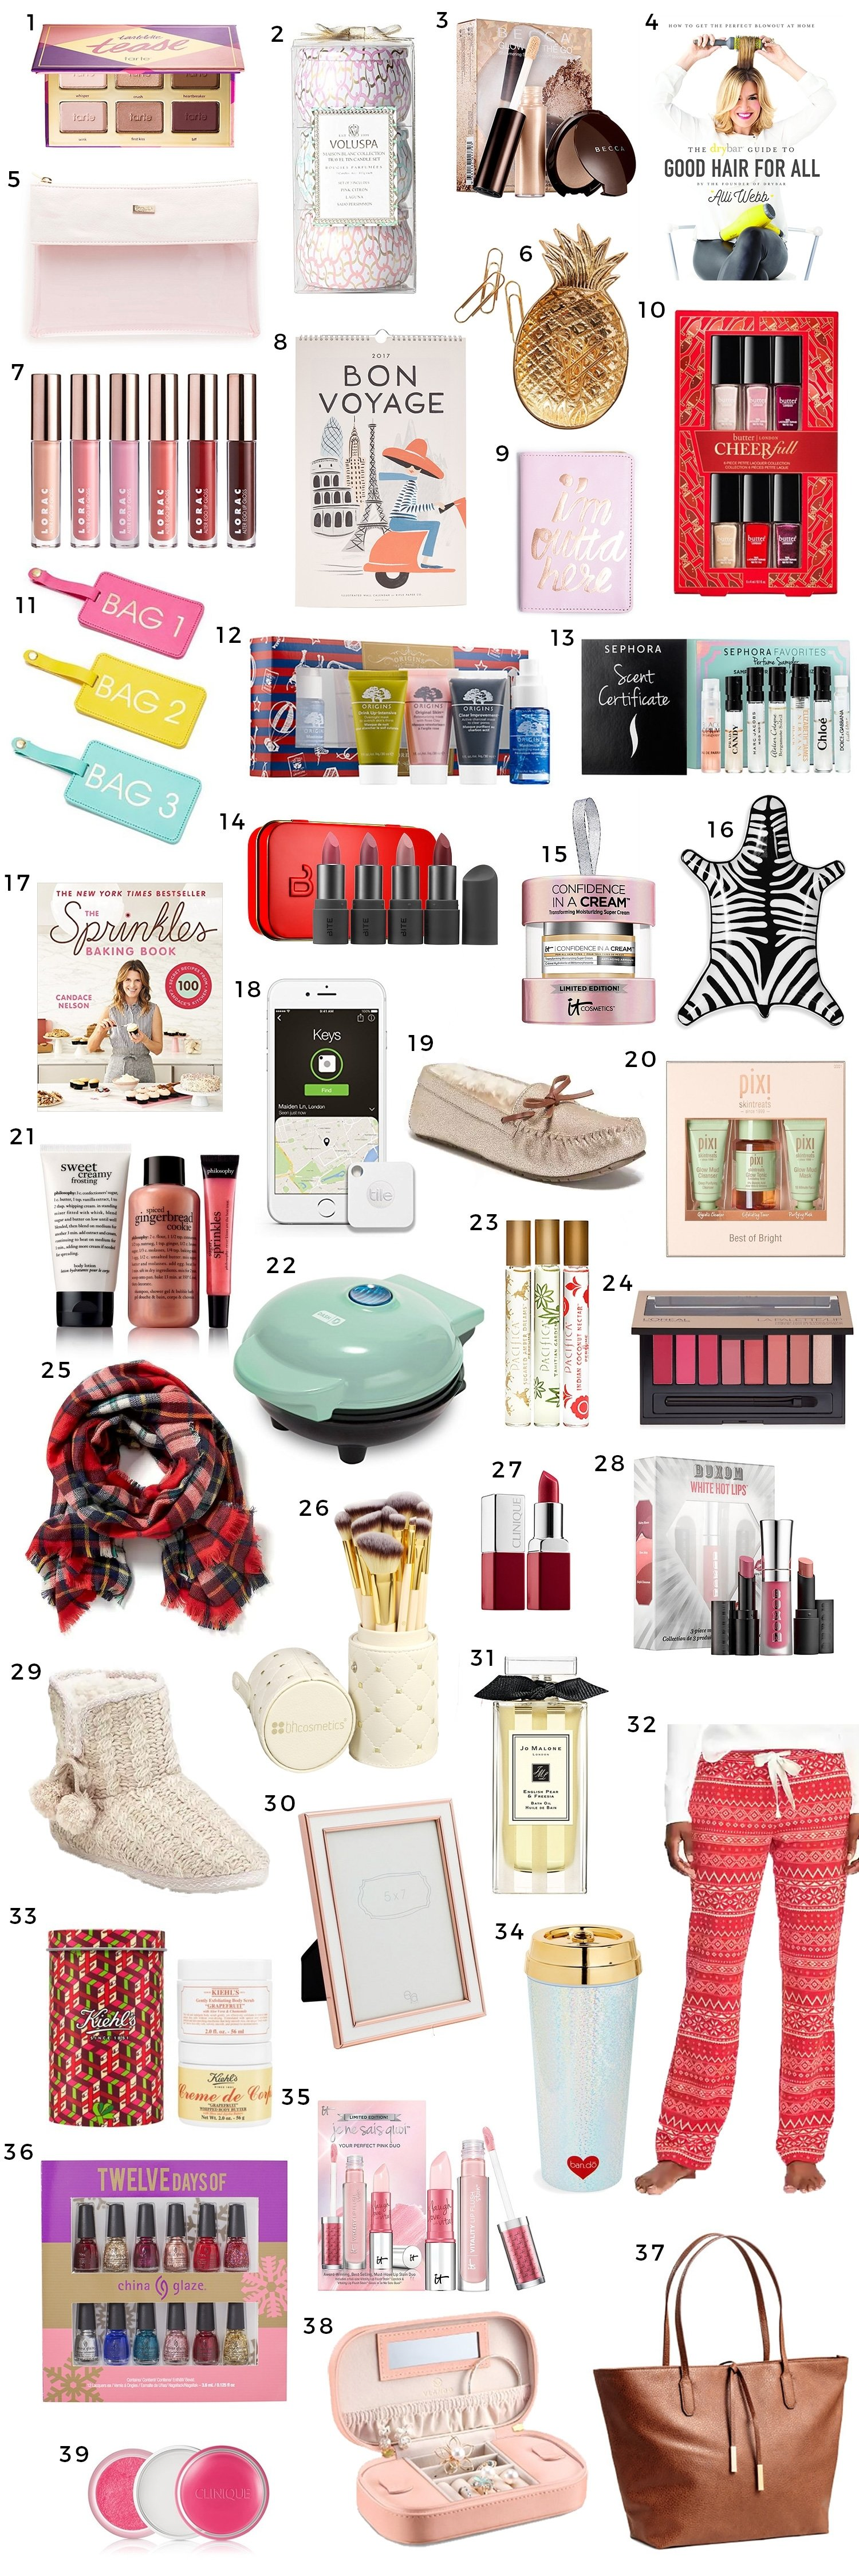 10 Awesome Holiday Gift Ideas For Women the best christmas gift ideas for women under 25 ashley brooke 3 2020